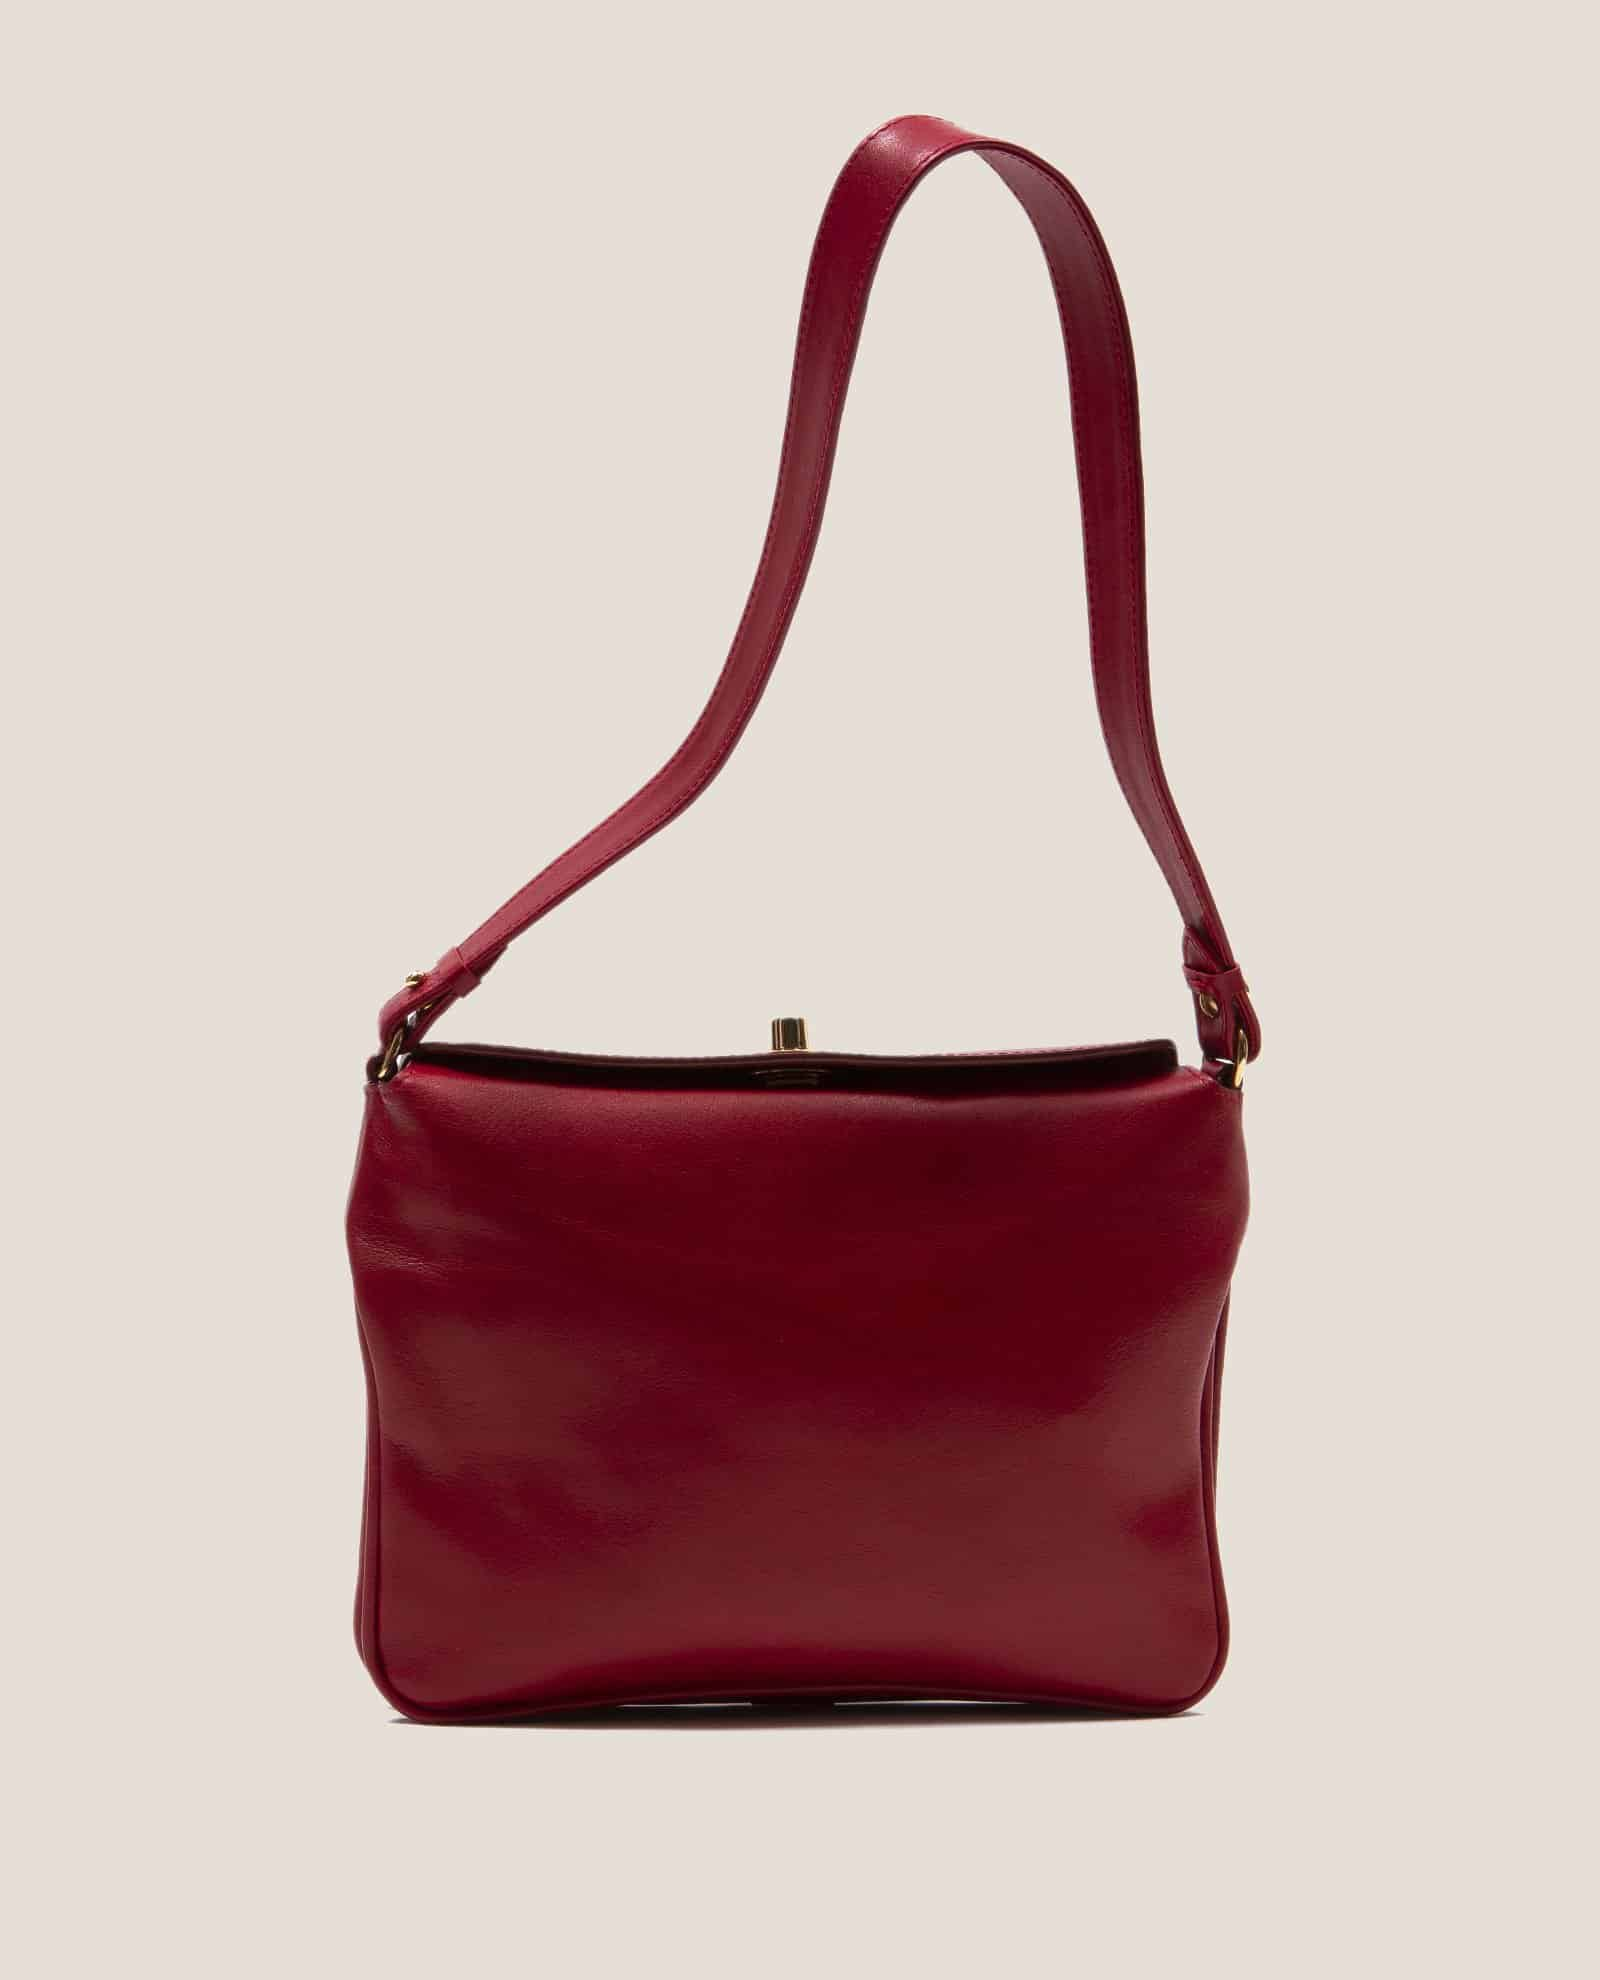 Lady Bag, Chloe red (ref #CPR-09) Petty Things front